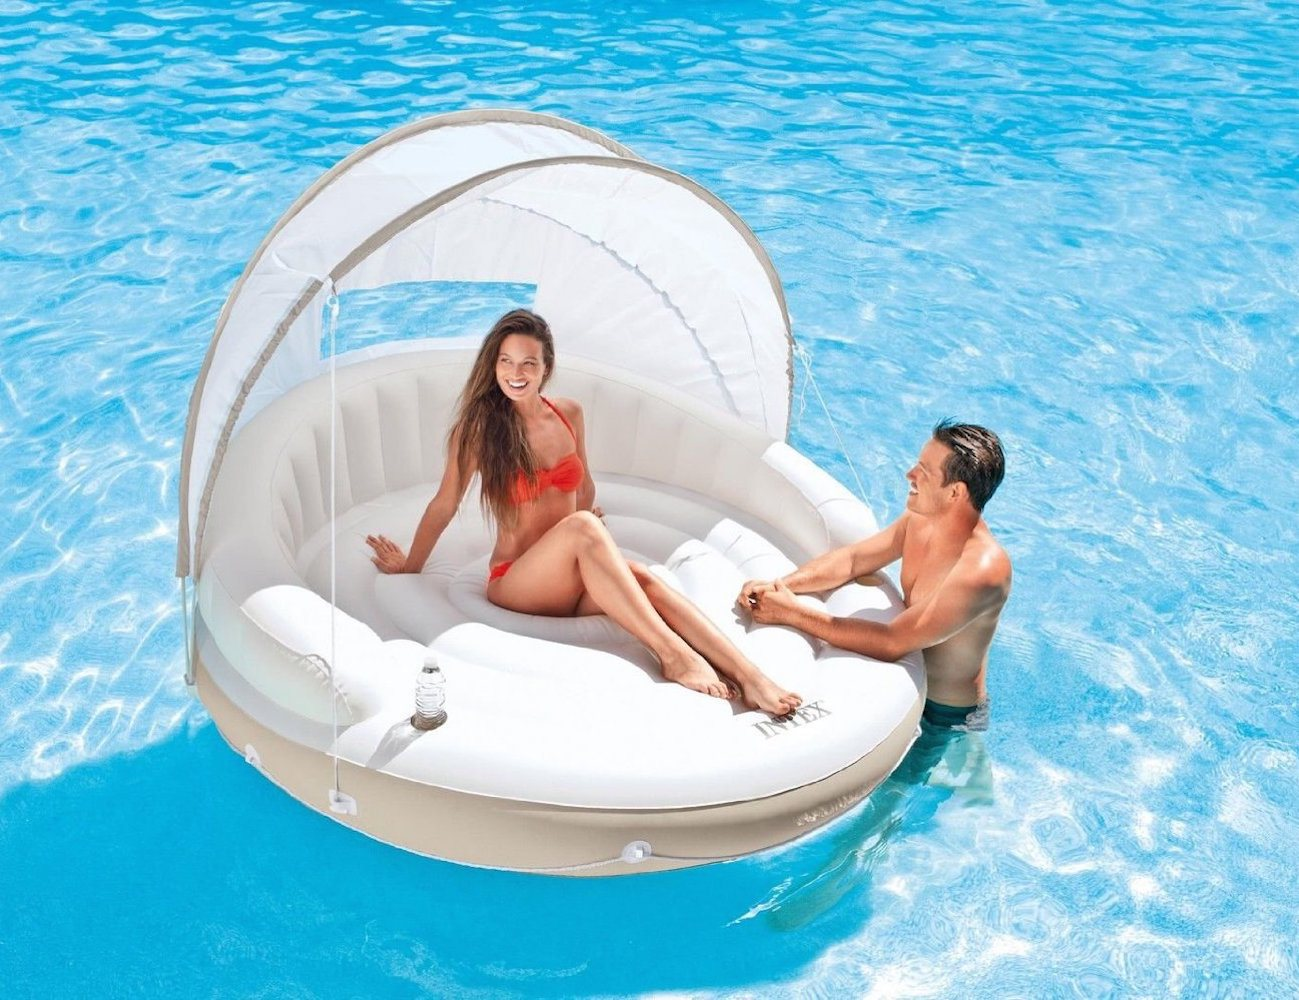 Canopy+Island+%26%238211%3B+Inflatable+Water+Lounge+Raft+By+Intex